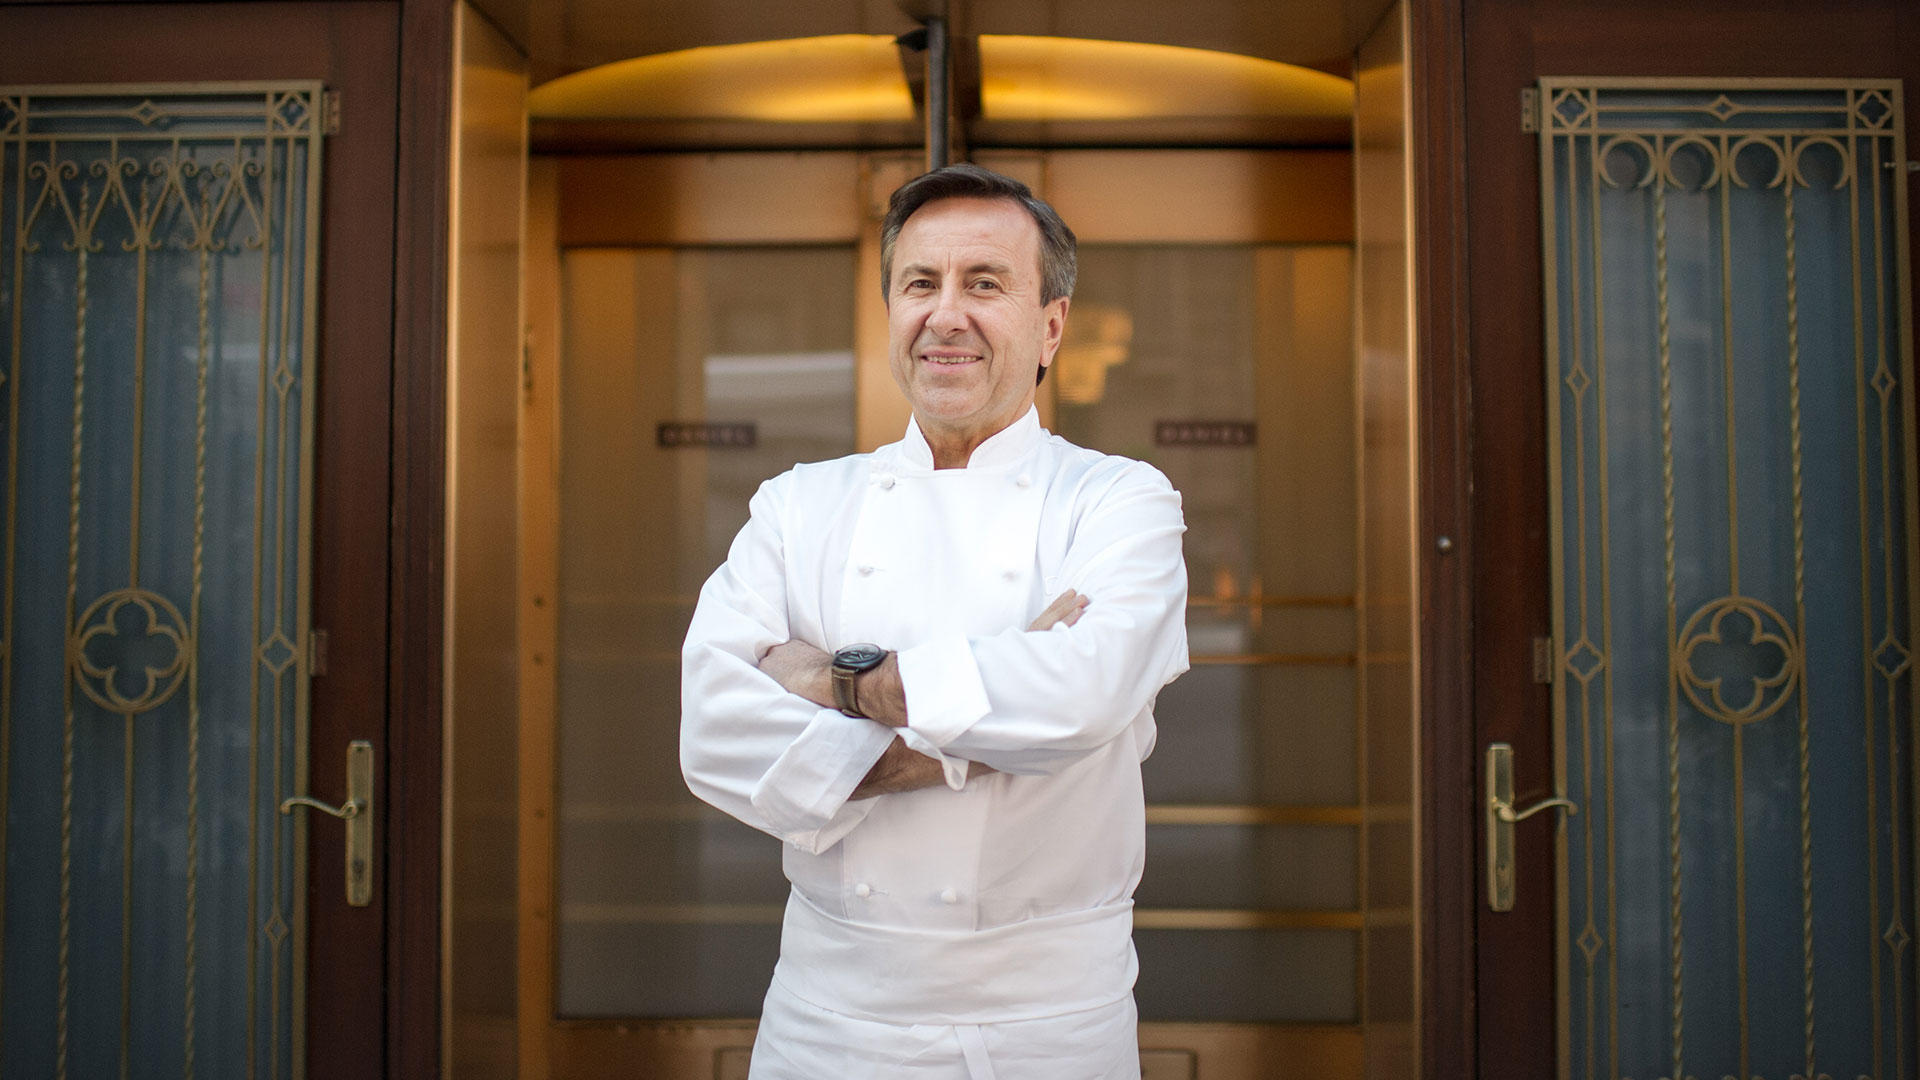 Leadership Lessons from Renowned Chef Daniel Boulud